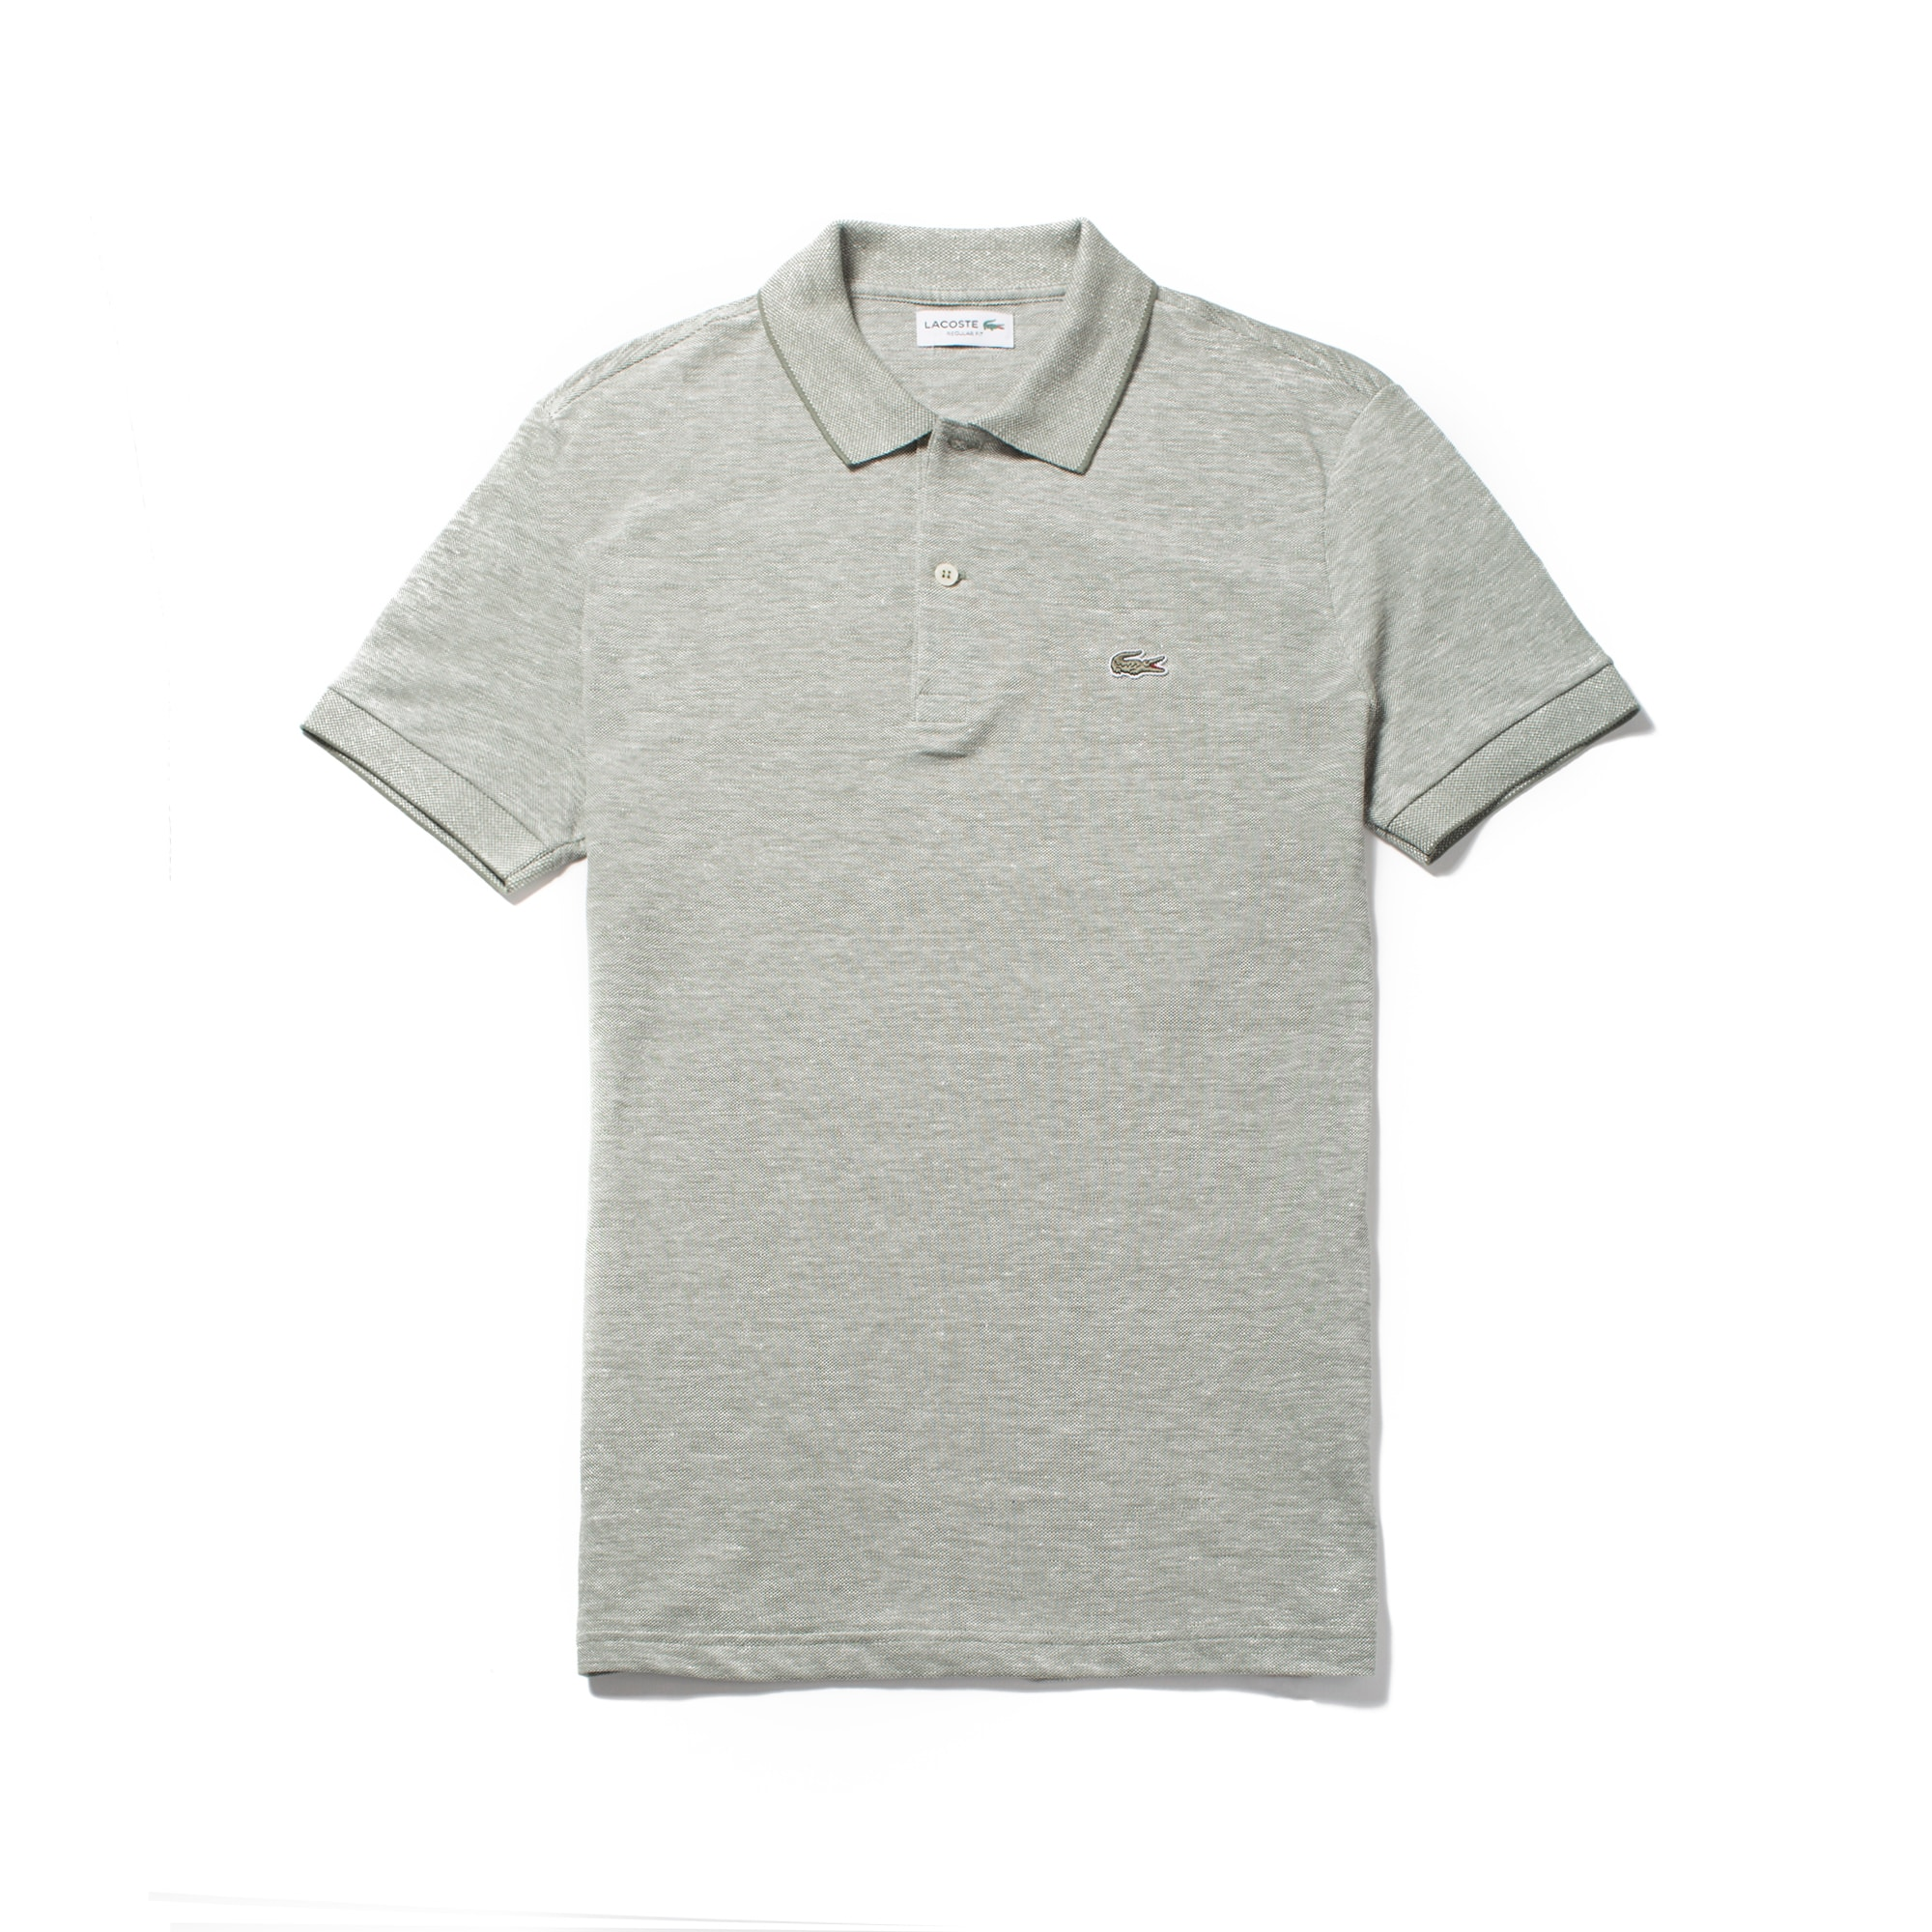 mens polo shirts lacoste polo shirts for men lacoste